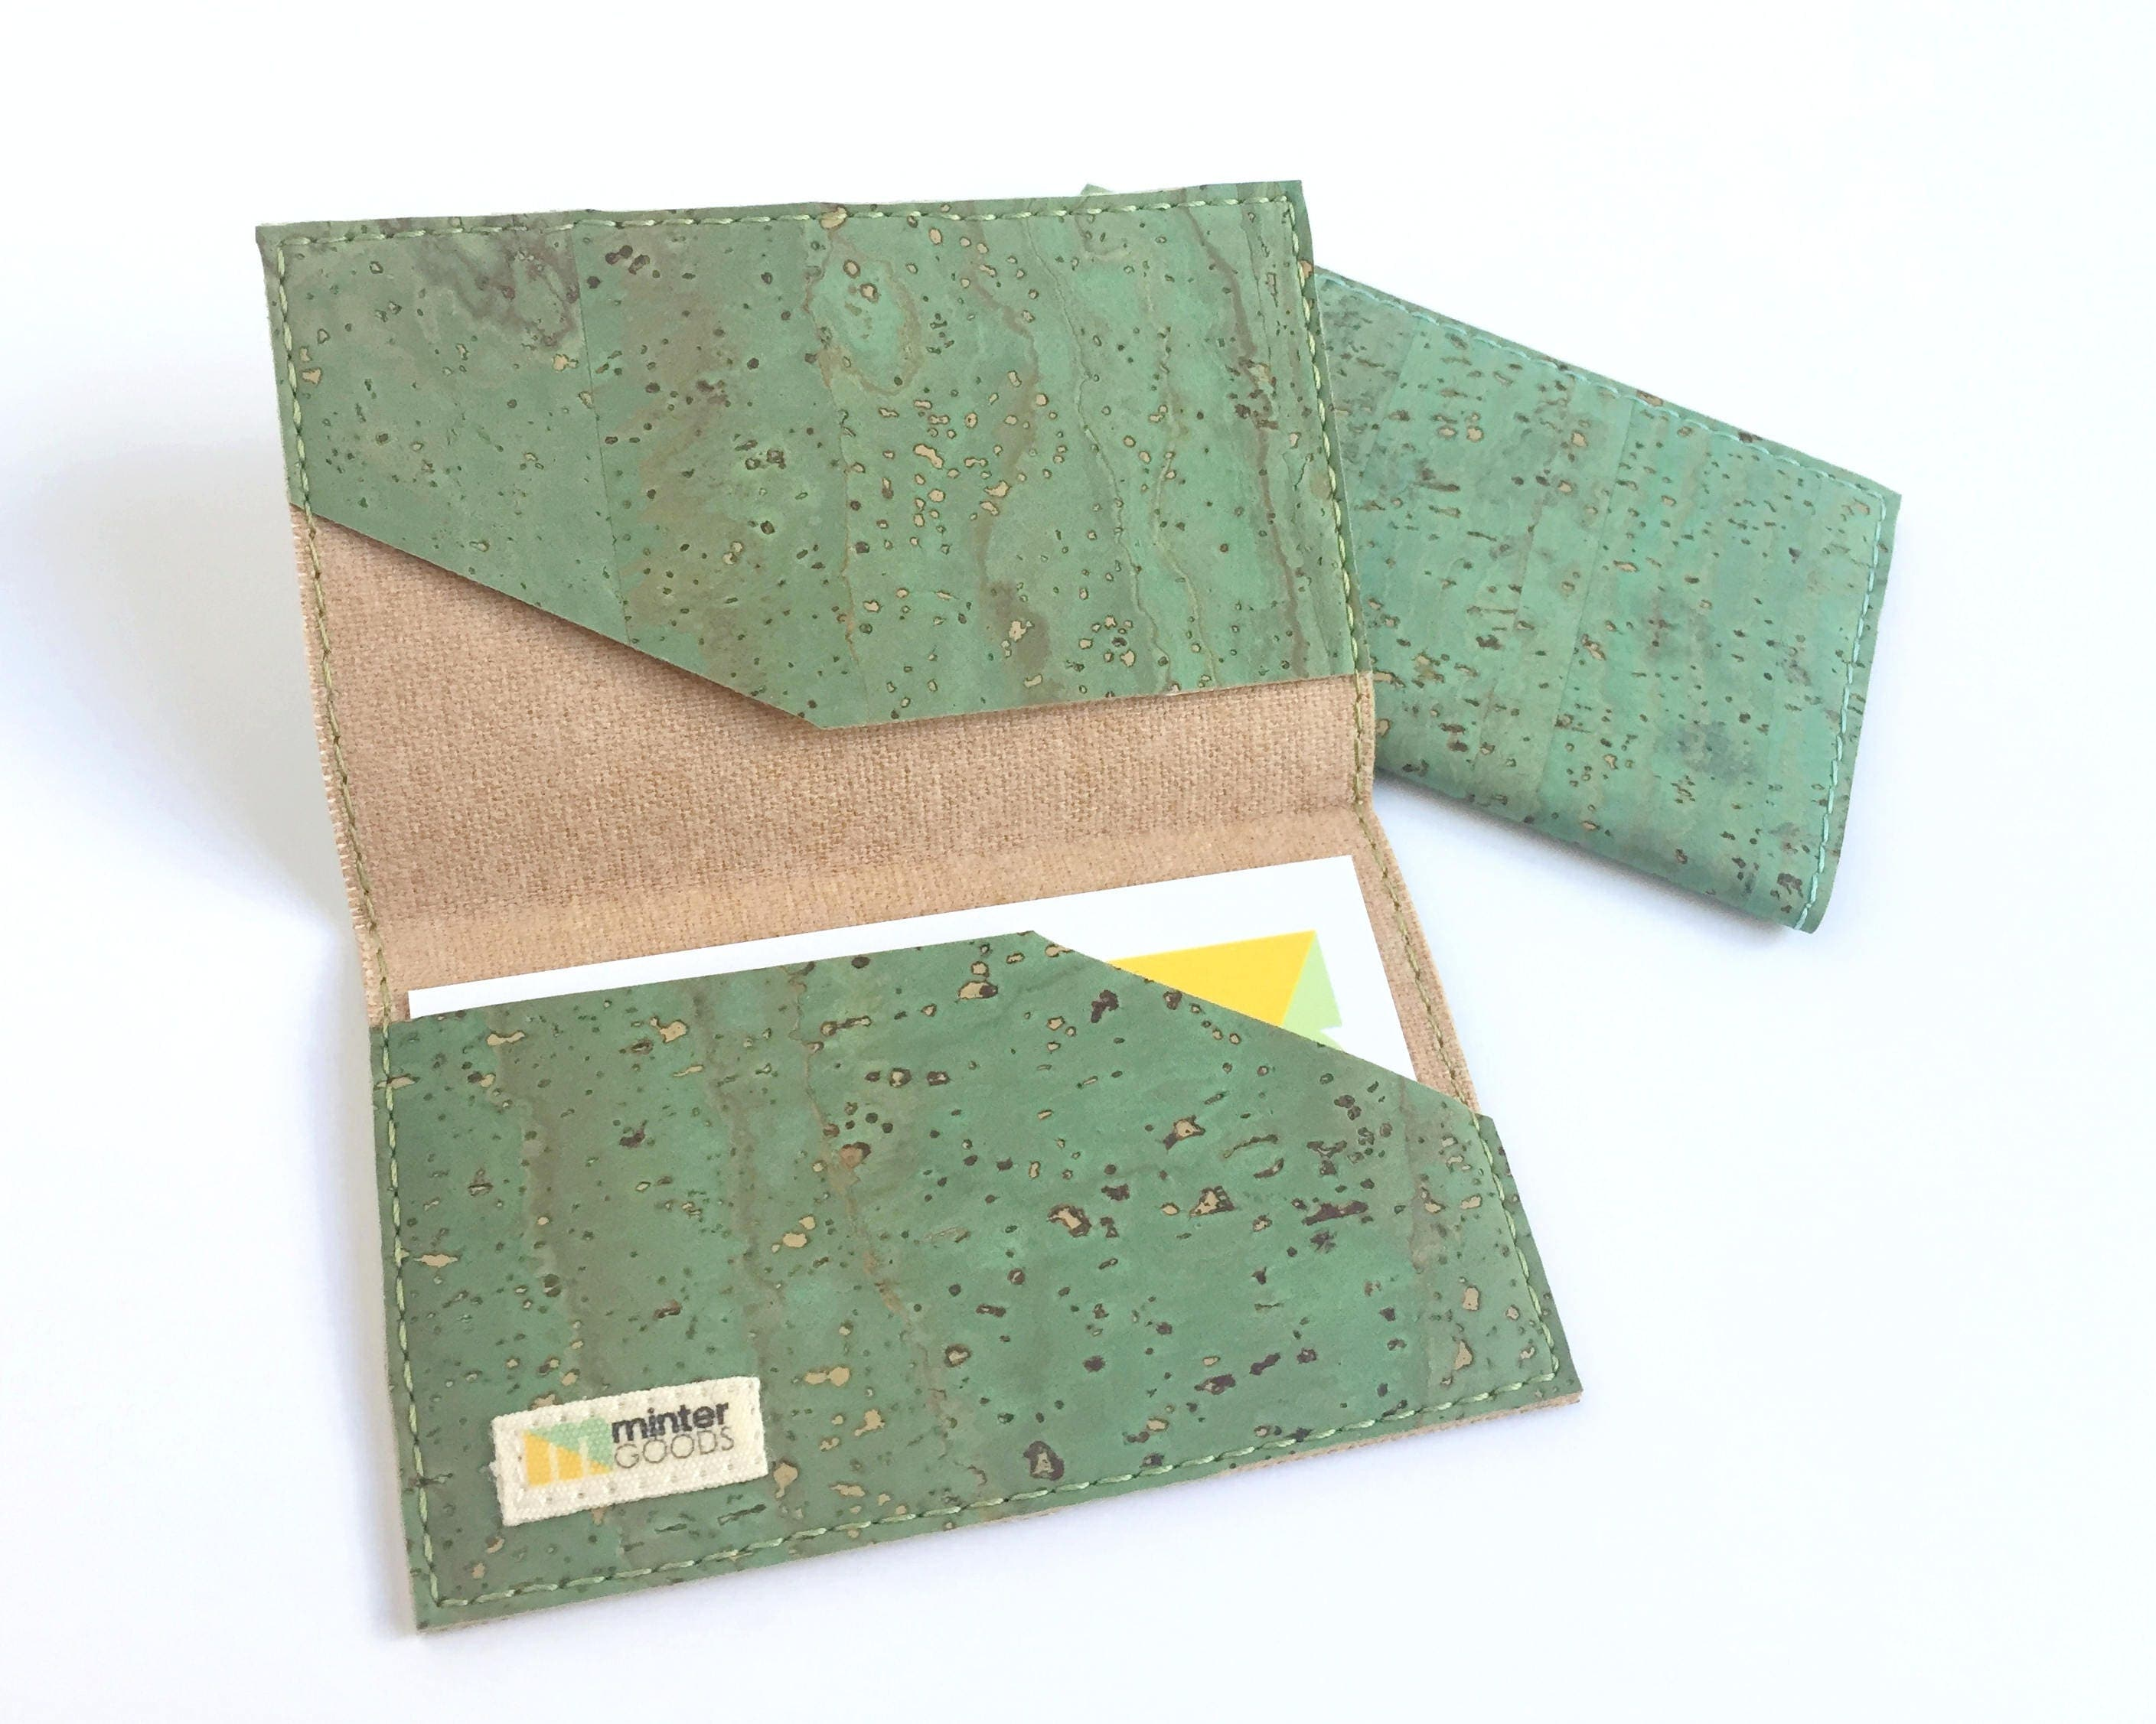 Cork card case green cork fabric business card case card holder cork card case green cork fabric business card case card holder stocking reheart Gallery